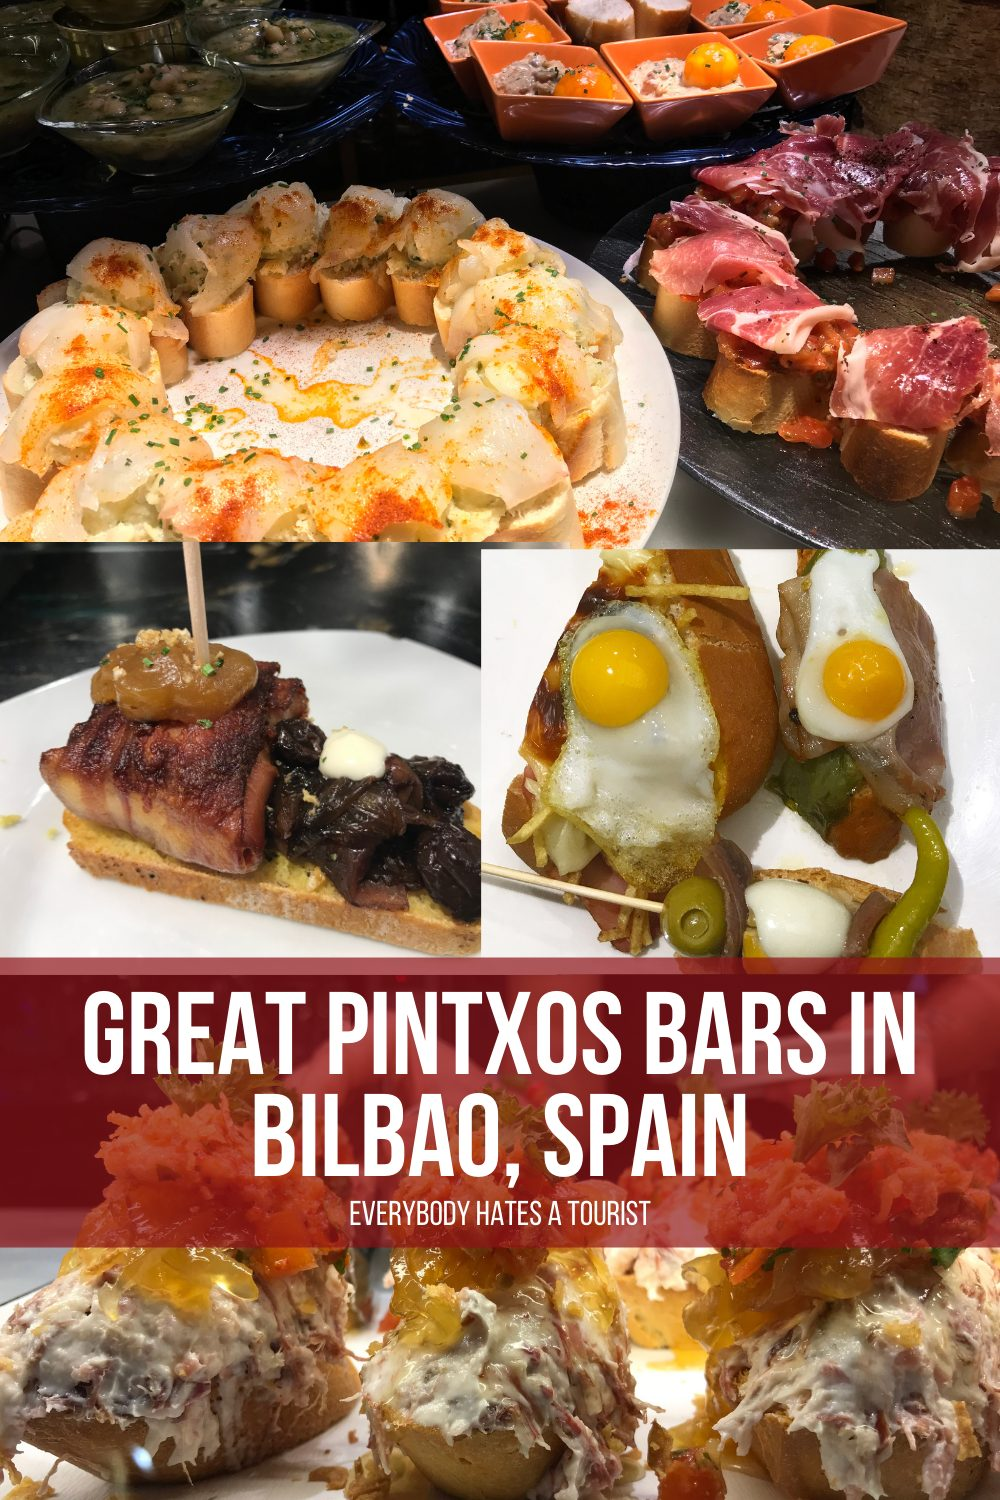 Great pintxos bars in Bilbao Spain - 15 great pintxos bars in Bilbao, Spain